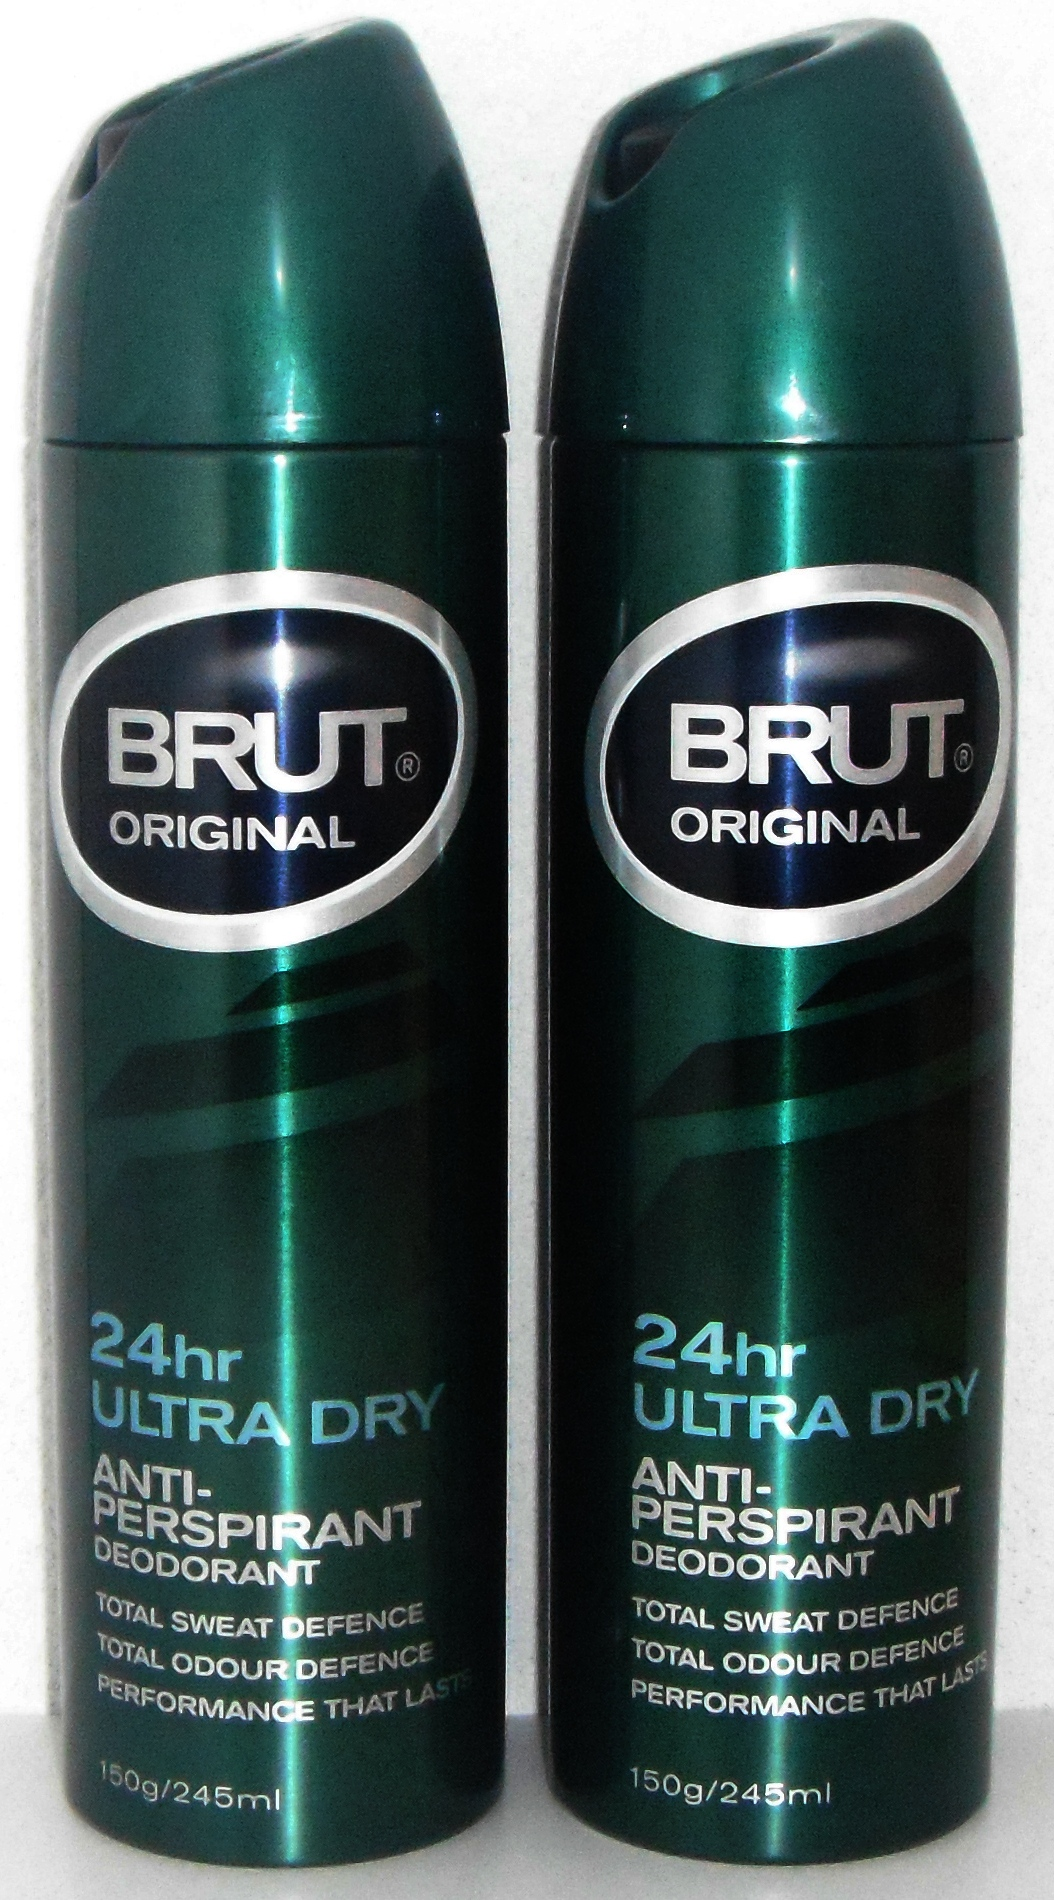 Brut Cologne Wikipedia